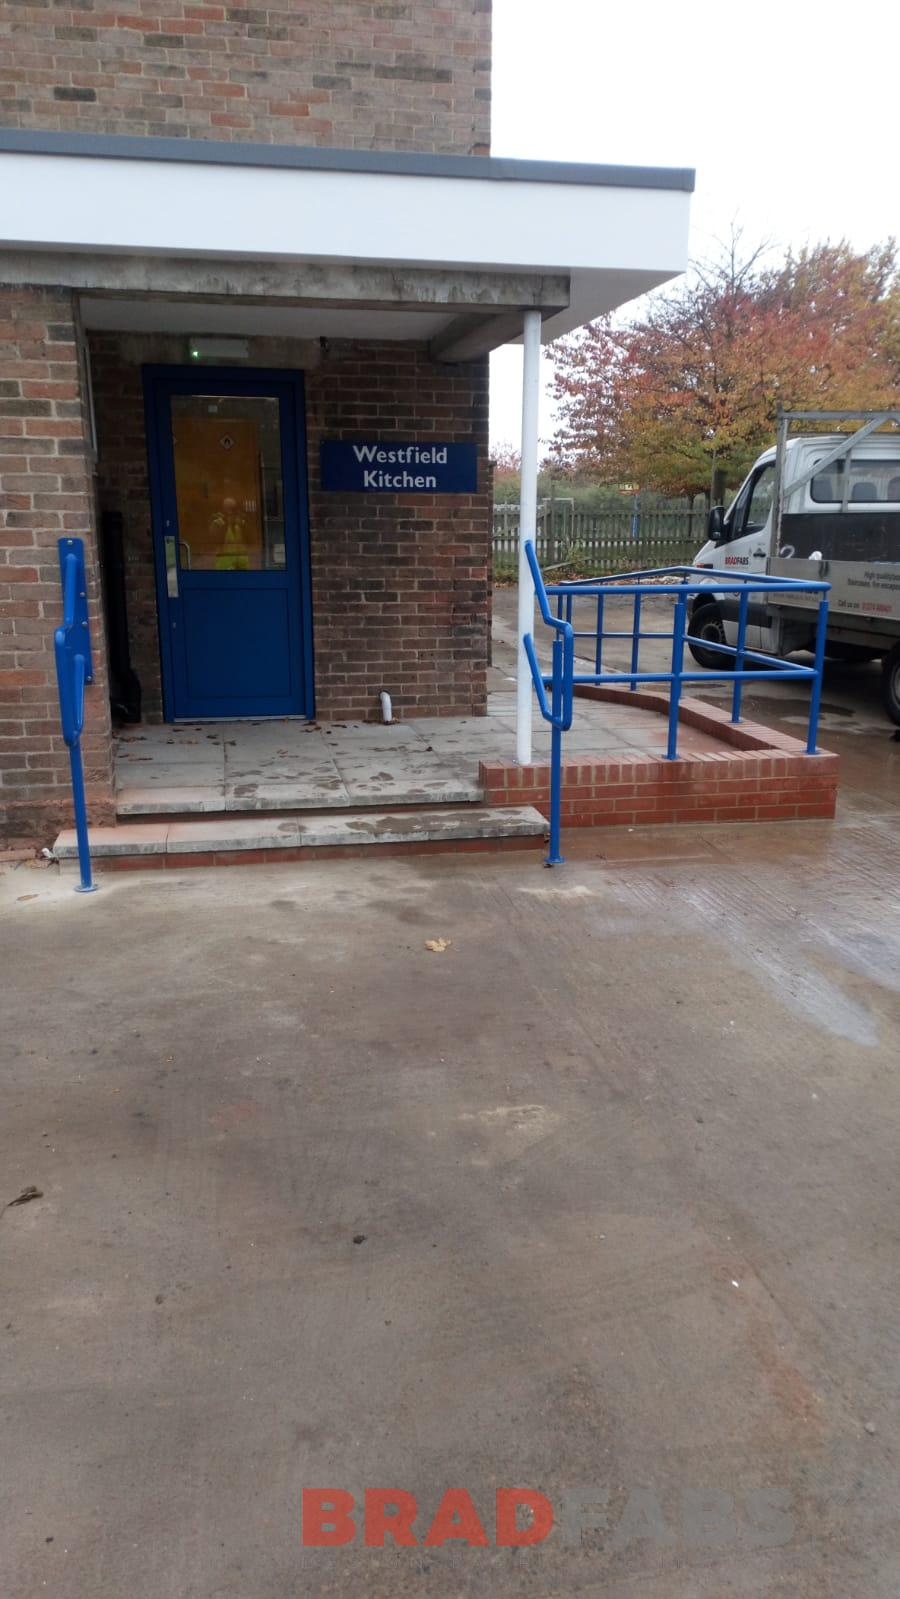 Outside school steel railings